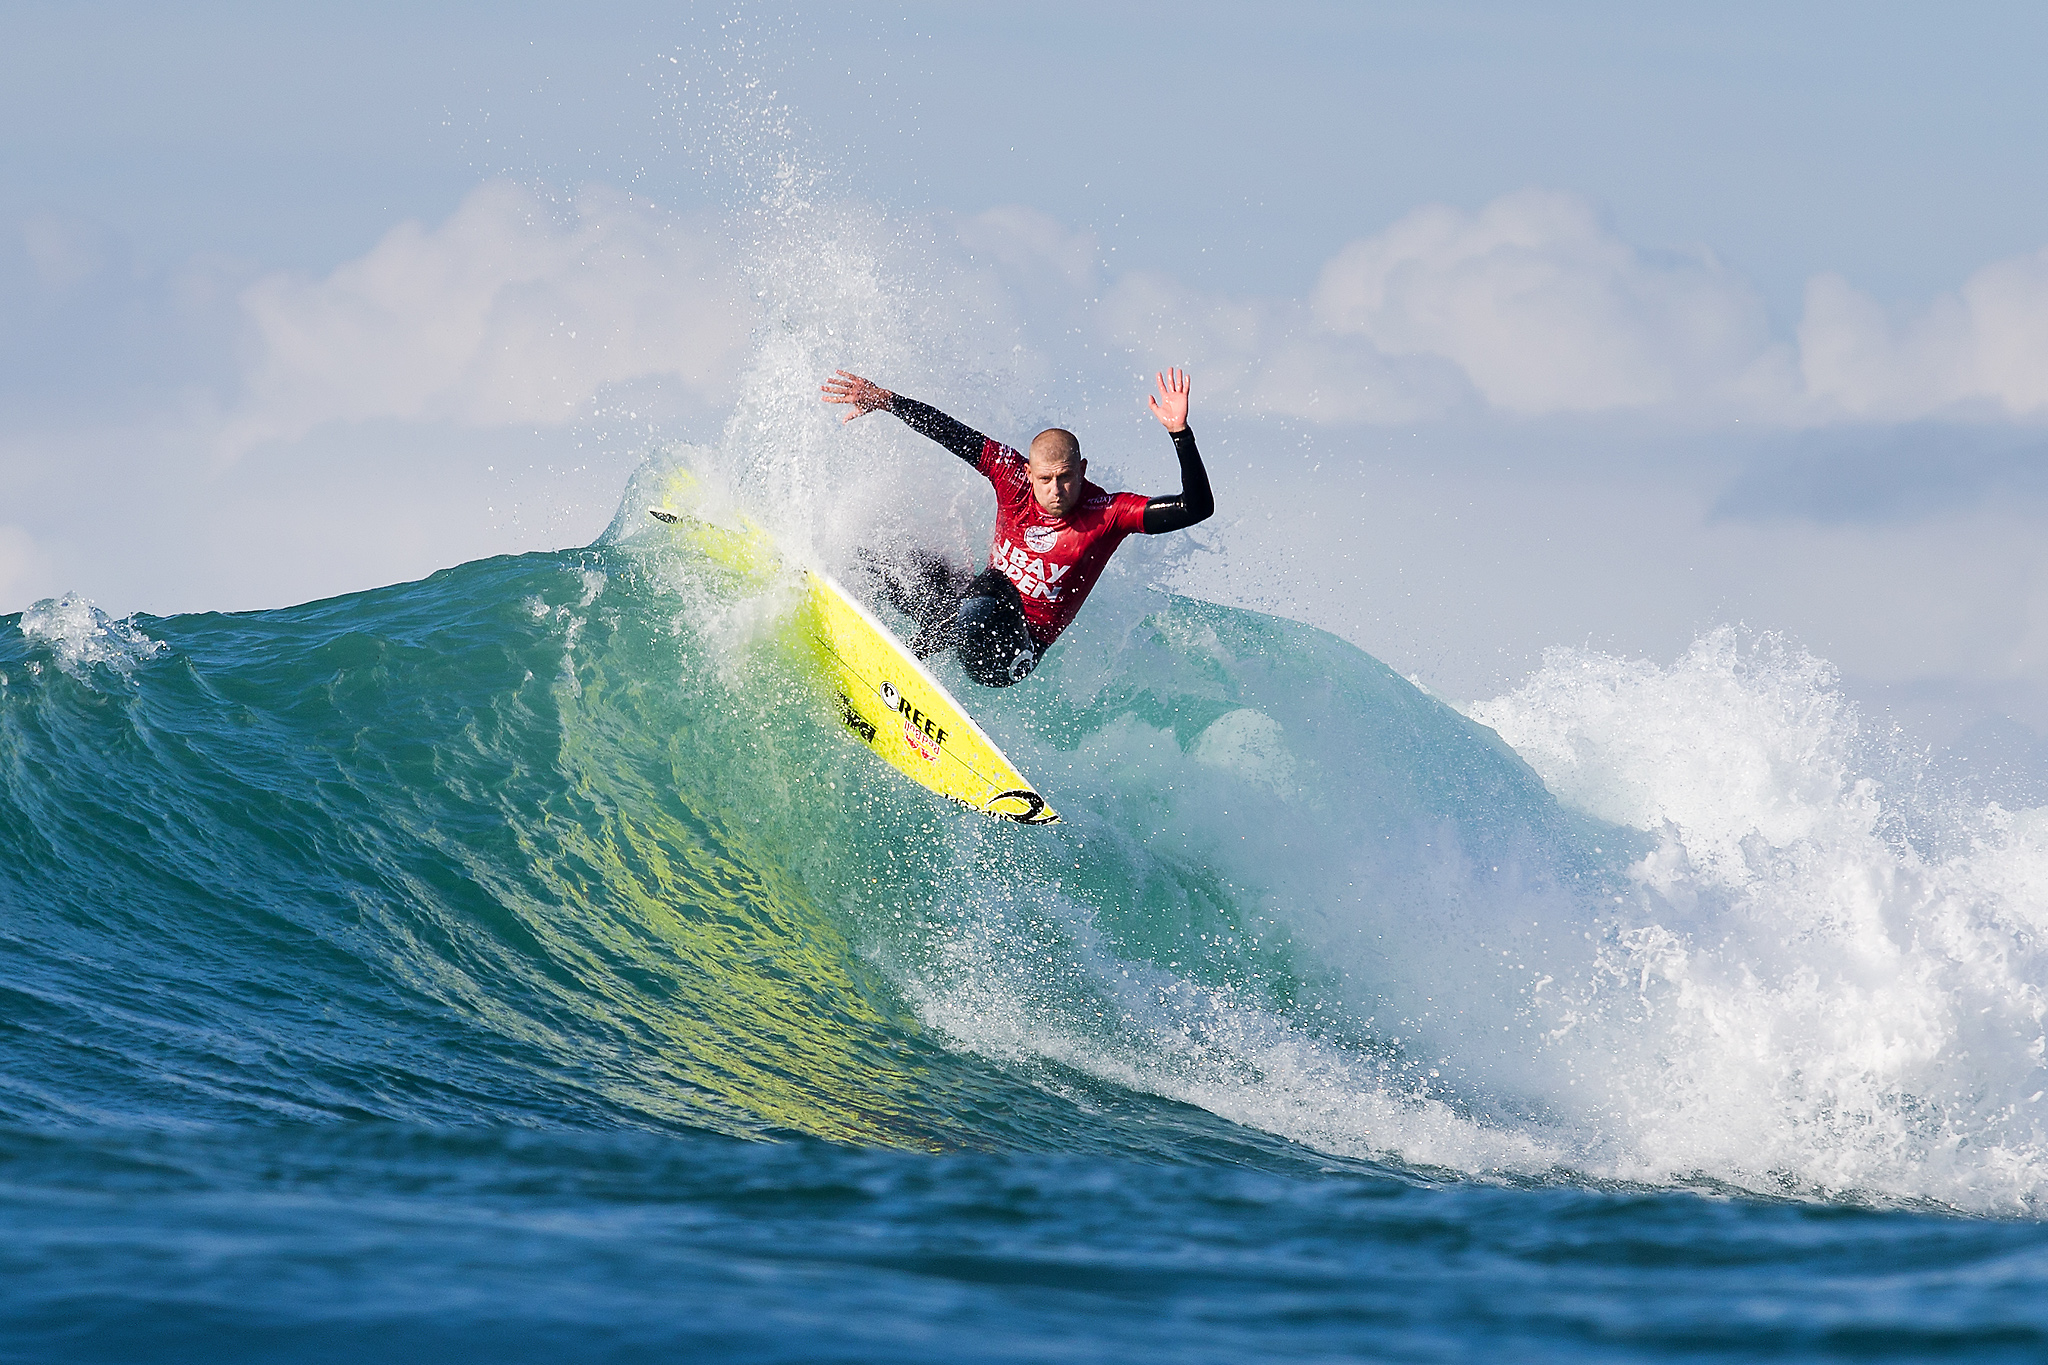 Switching from a pumping left-hand reef break like Cloudbreak to the racing right-hand point break that is J-Bay can be tricky.